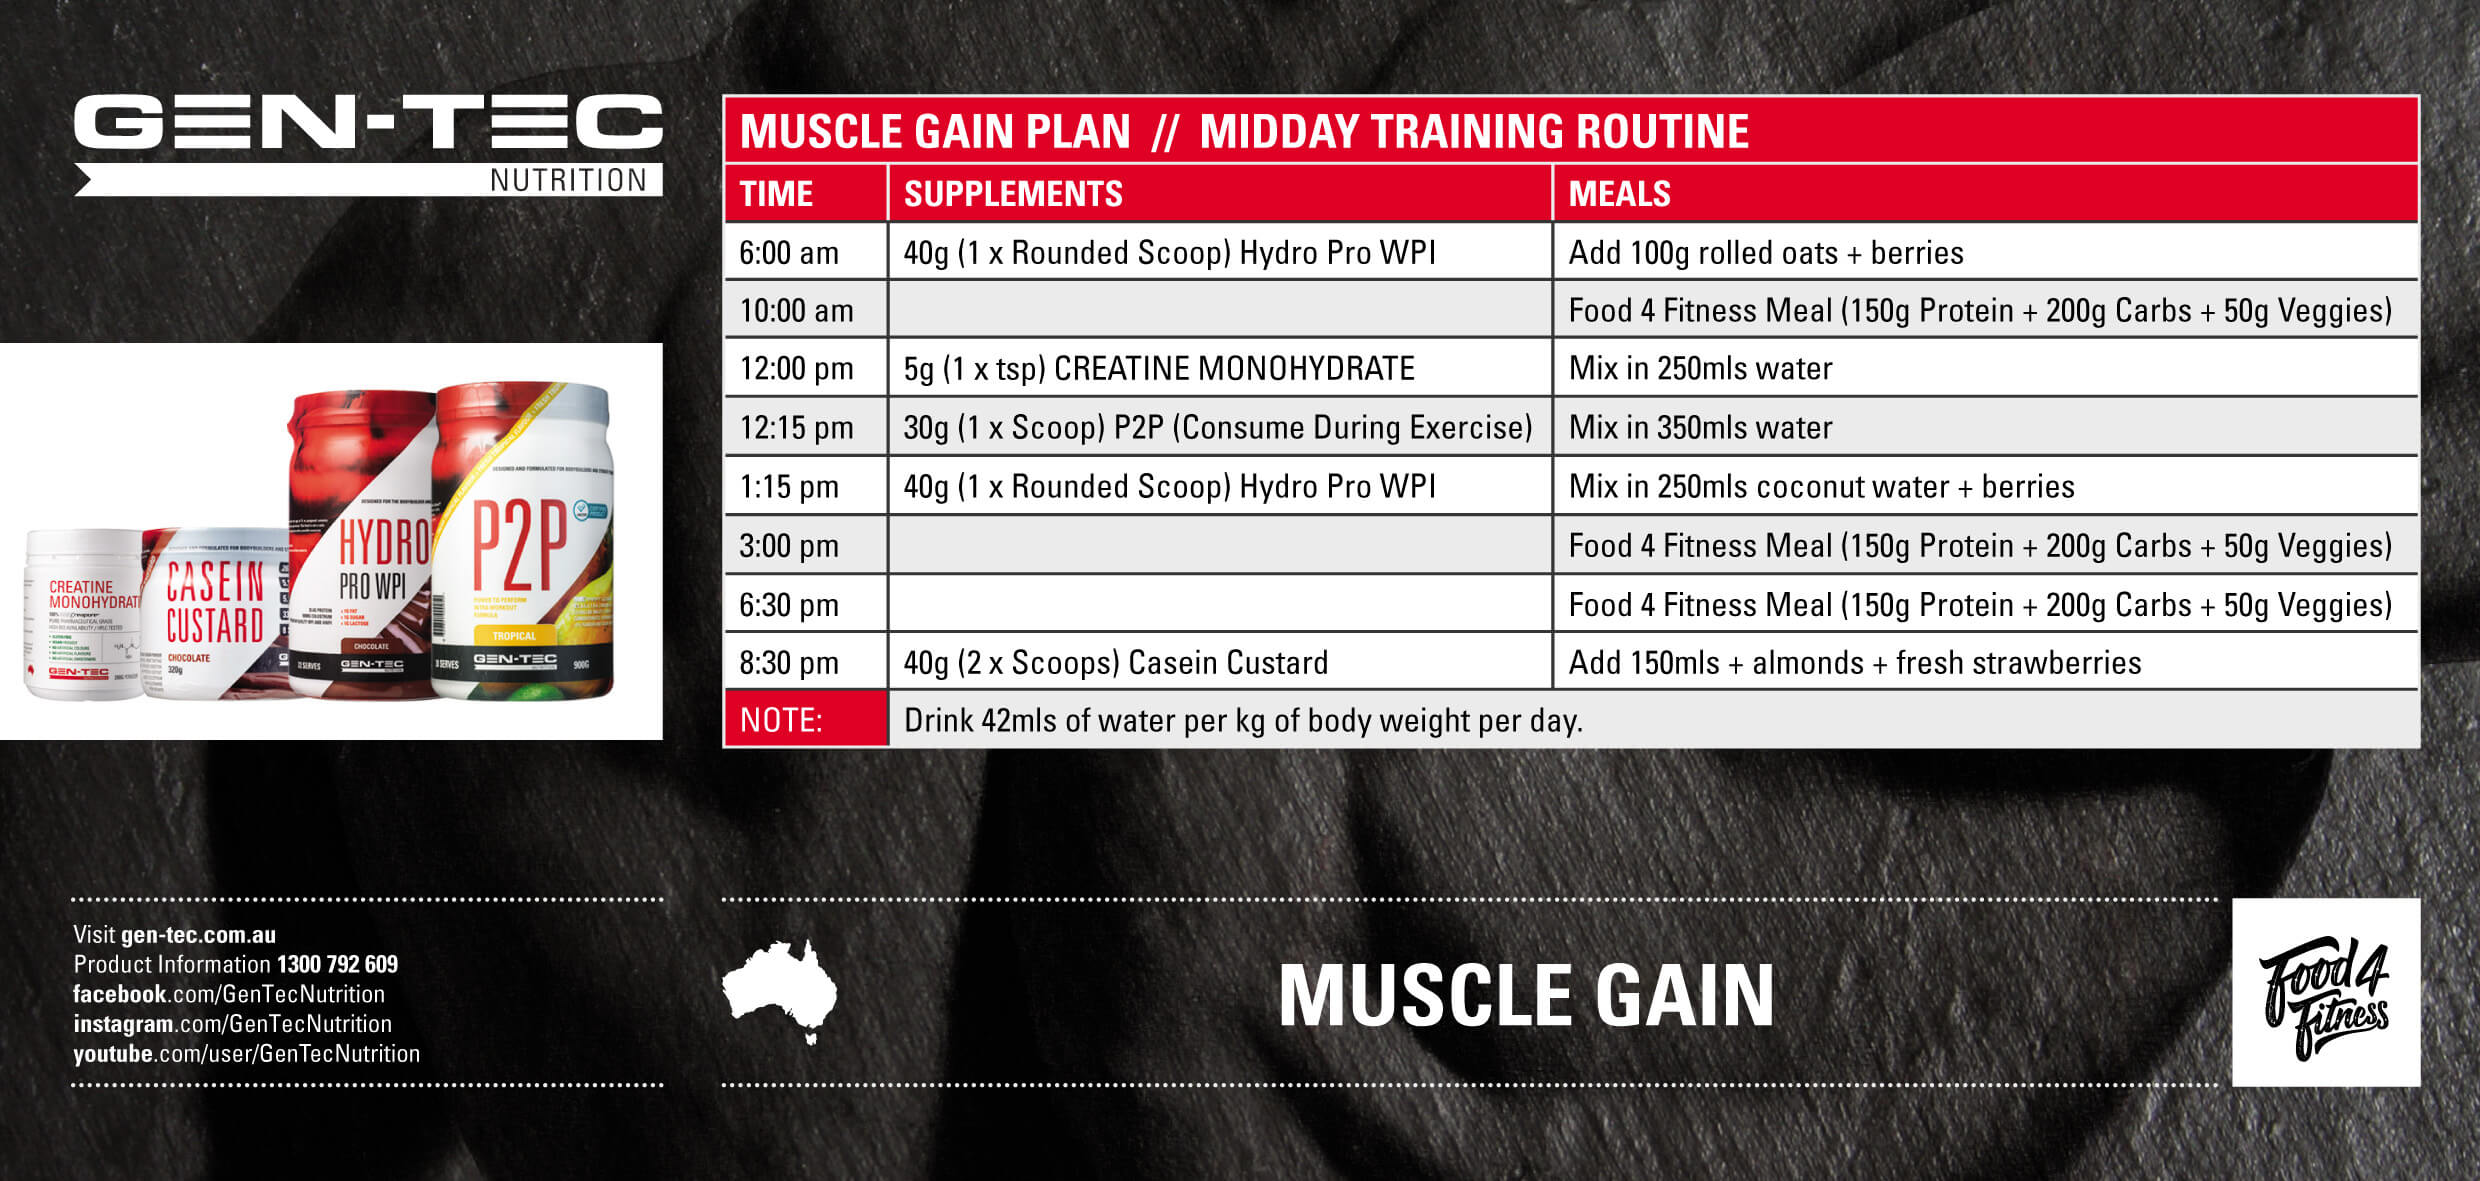 Muscle Gain Midday Training